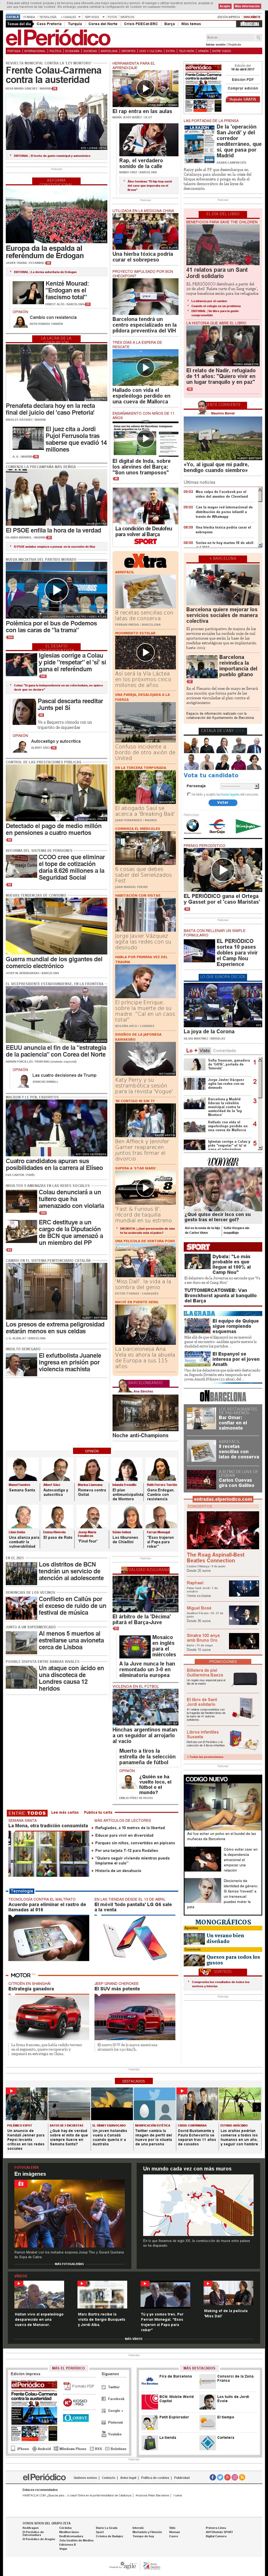 El Periodico at Tuesday April 18, 2017, 7:13 a.m. UTC